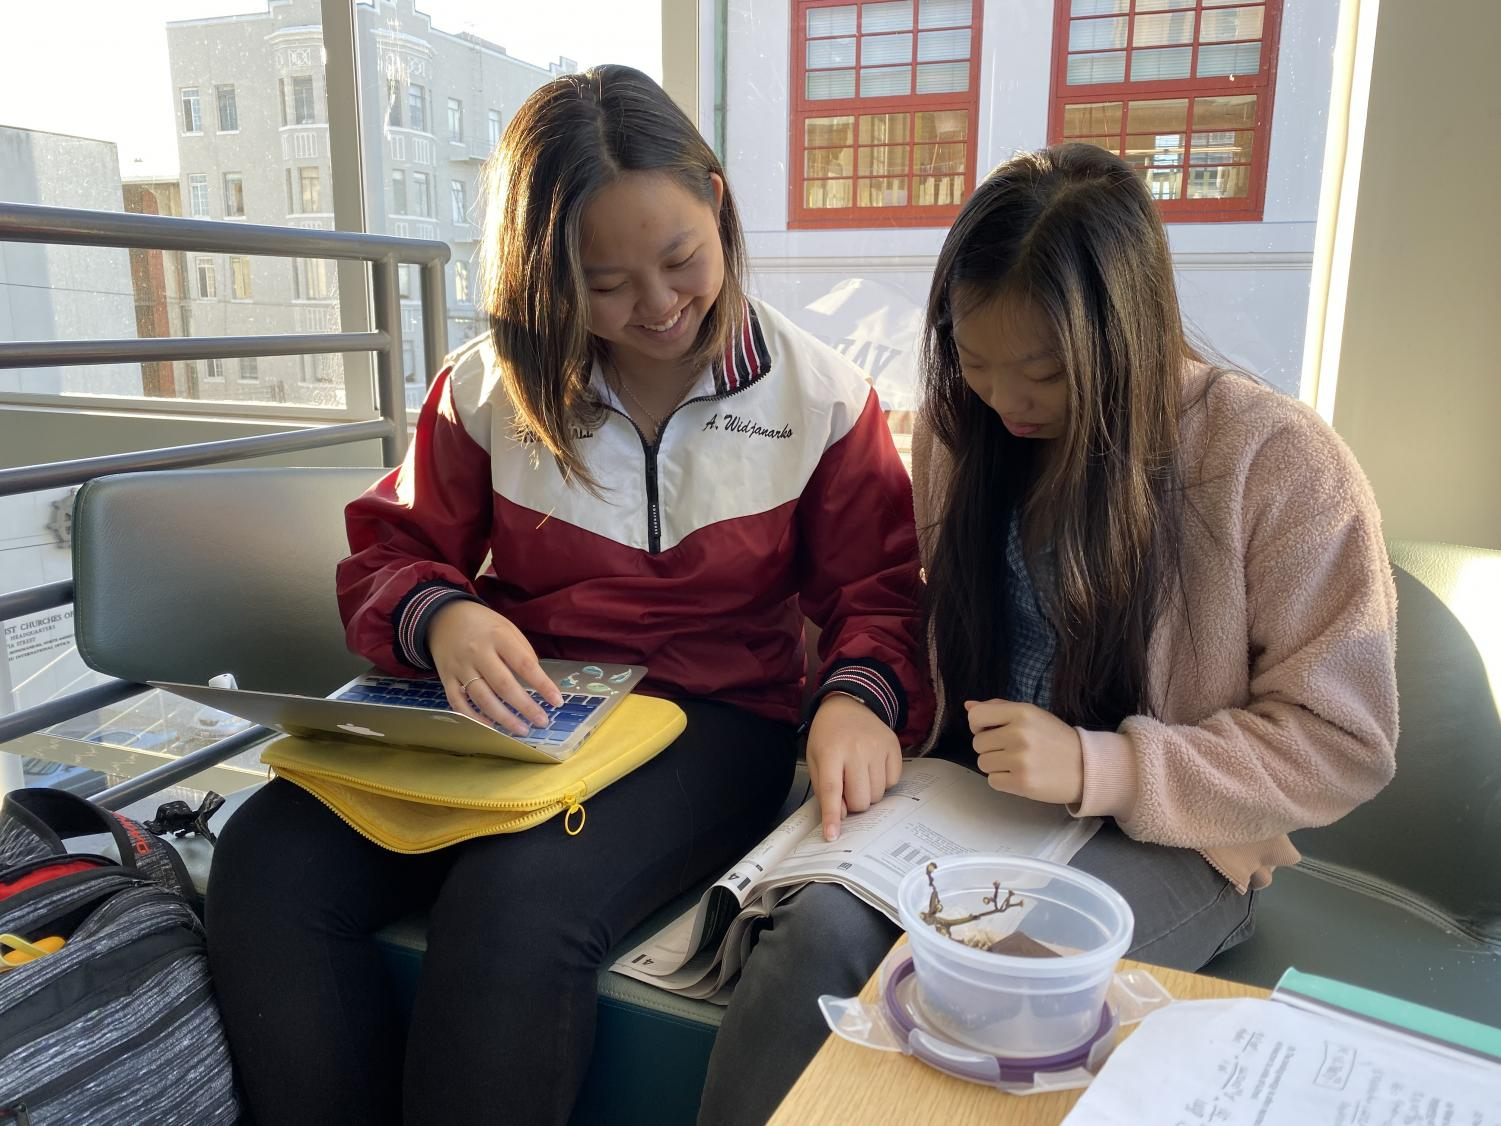 Senior Abby Widjanarko helps sophomore Madison Kwan study for the PSAT. Freshmen, sophomores and juniors will take the exam on Oct. 16.